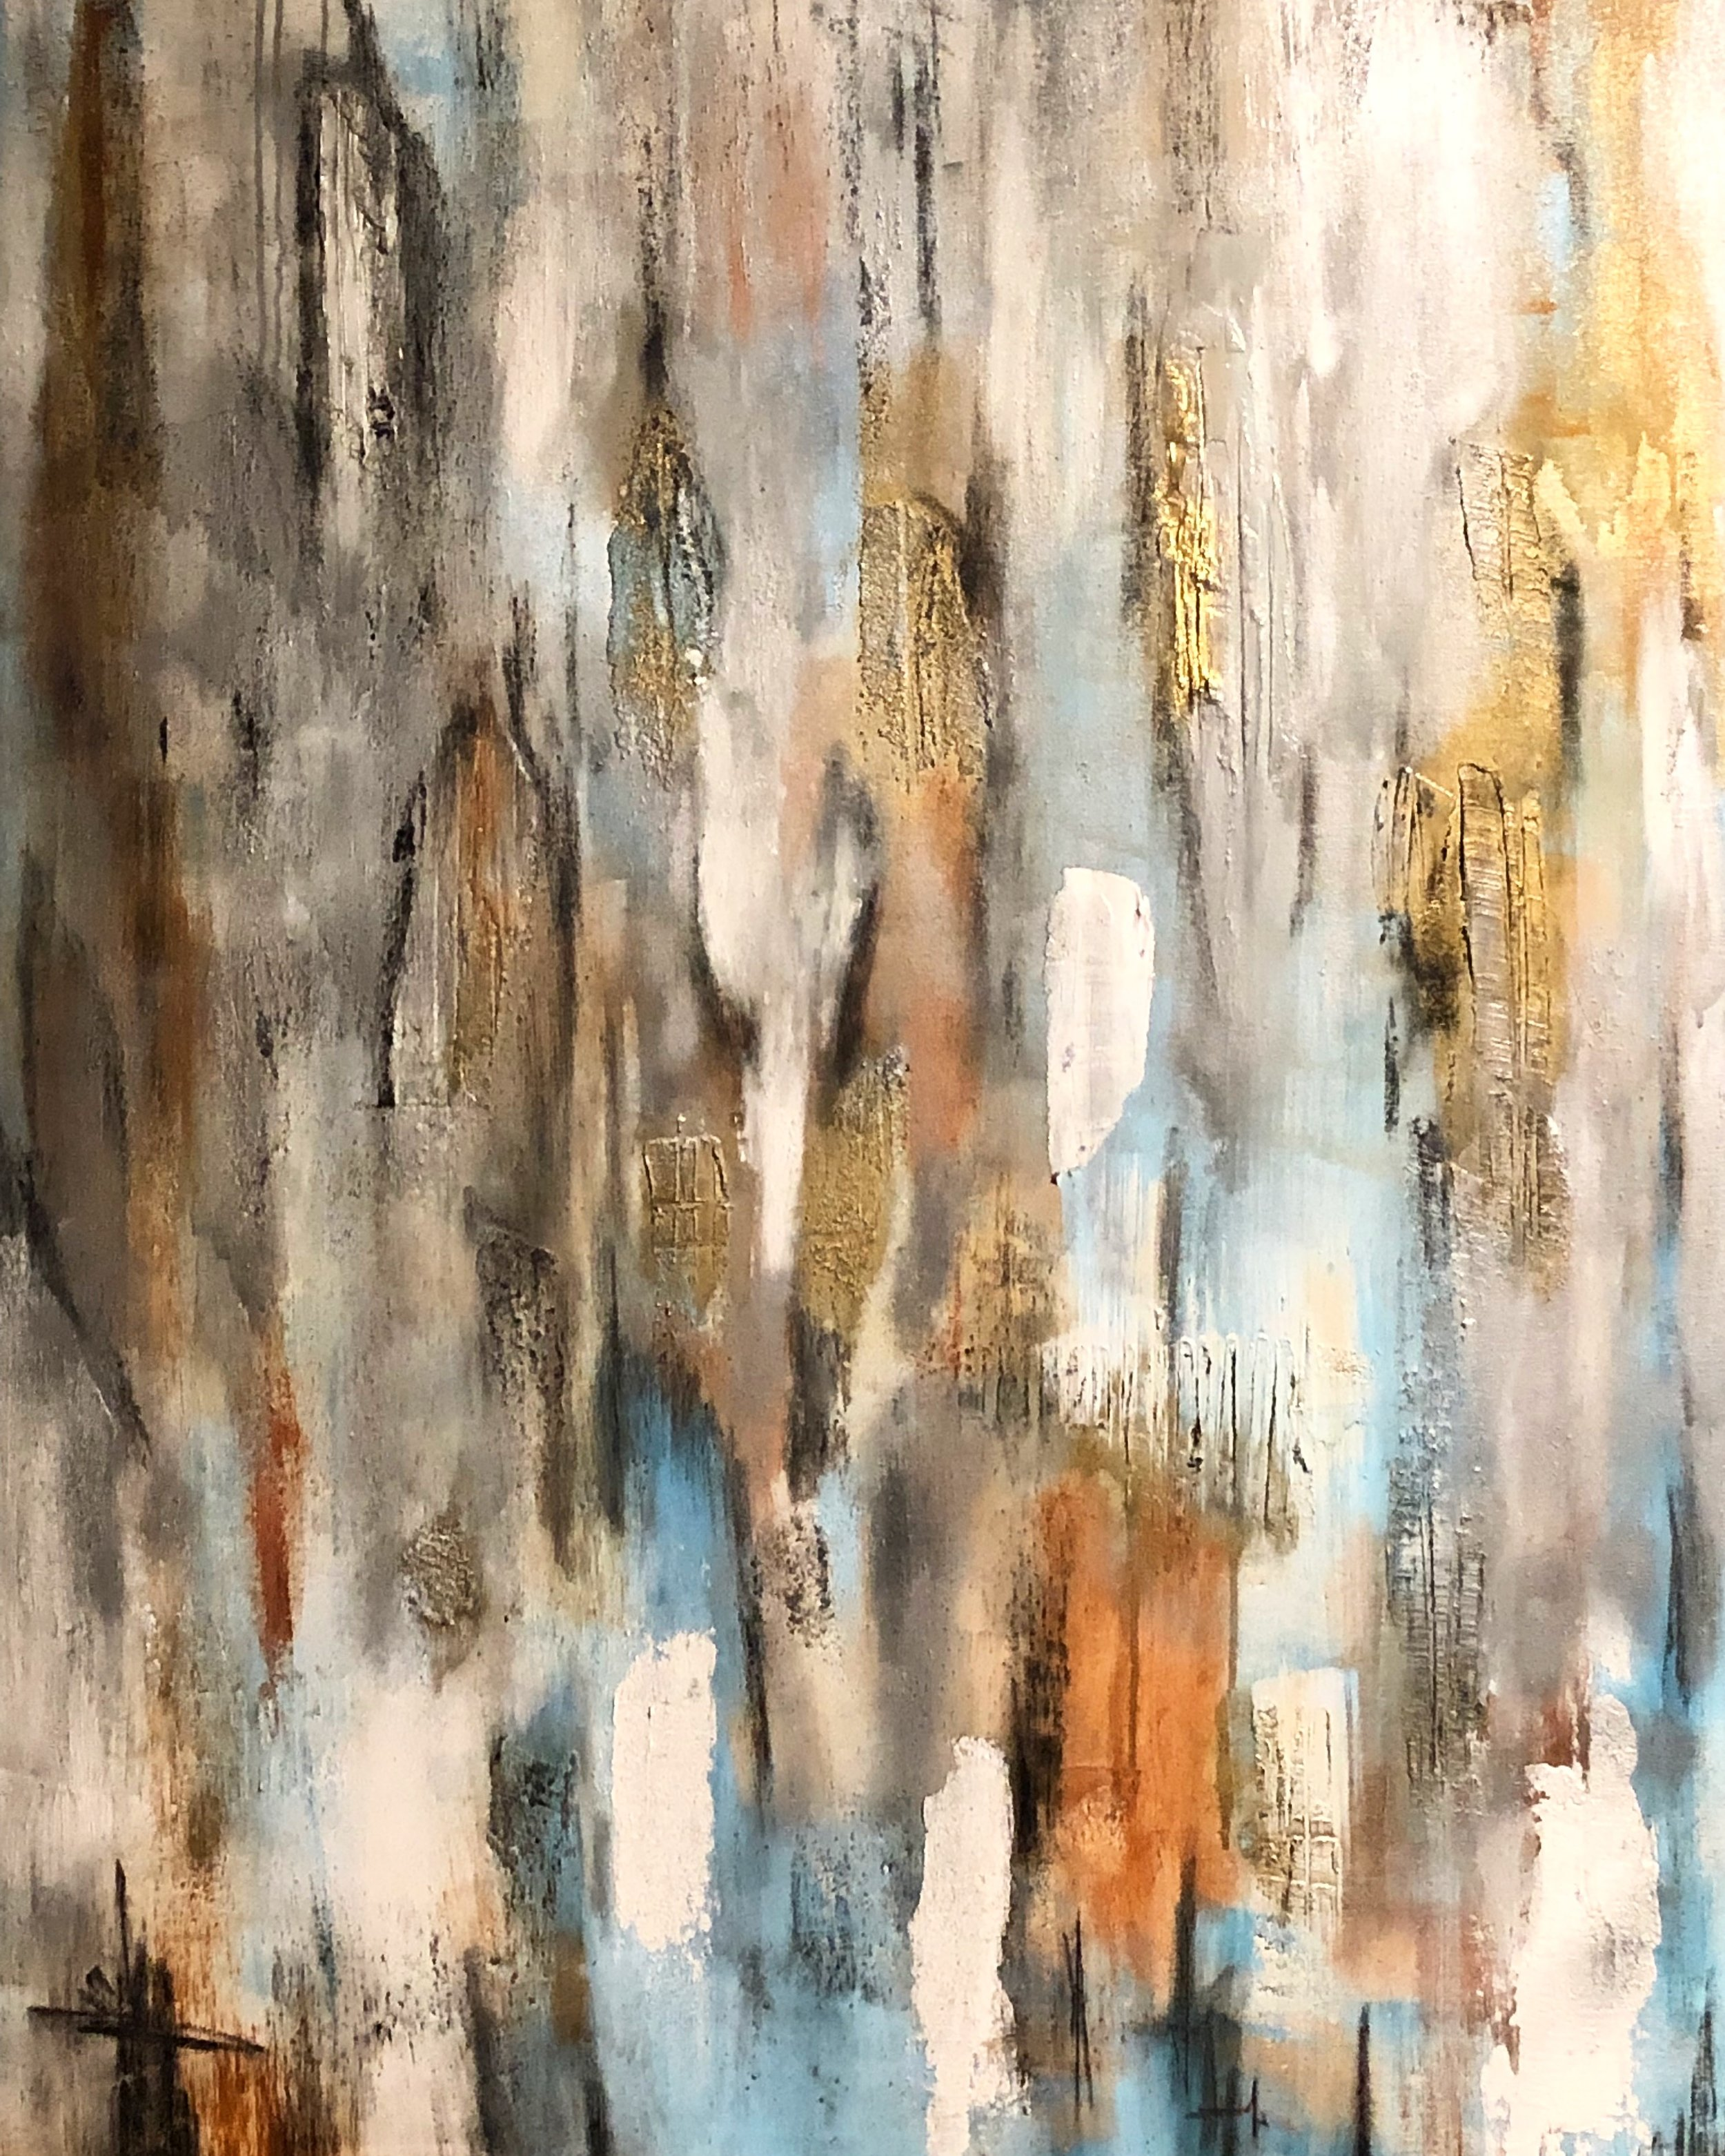 ABSTRACTS (2015-2019)